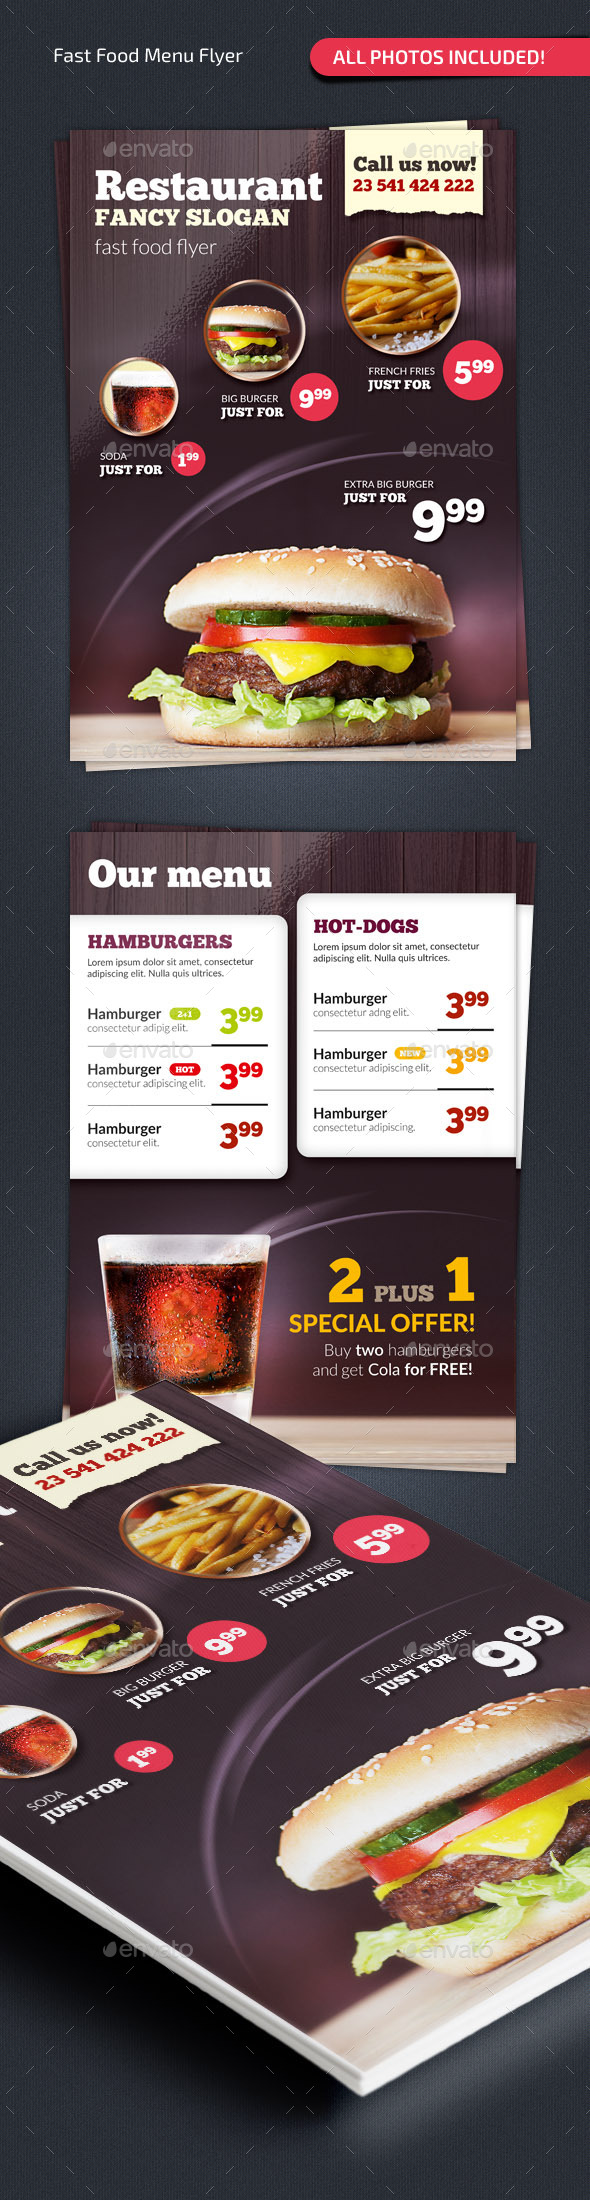 GraphicRiver Fast Food Menu Flyer #2 9719752